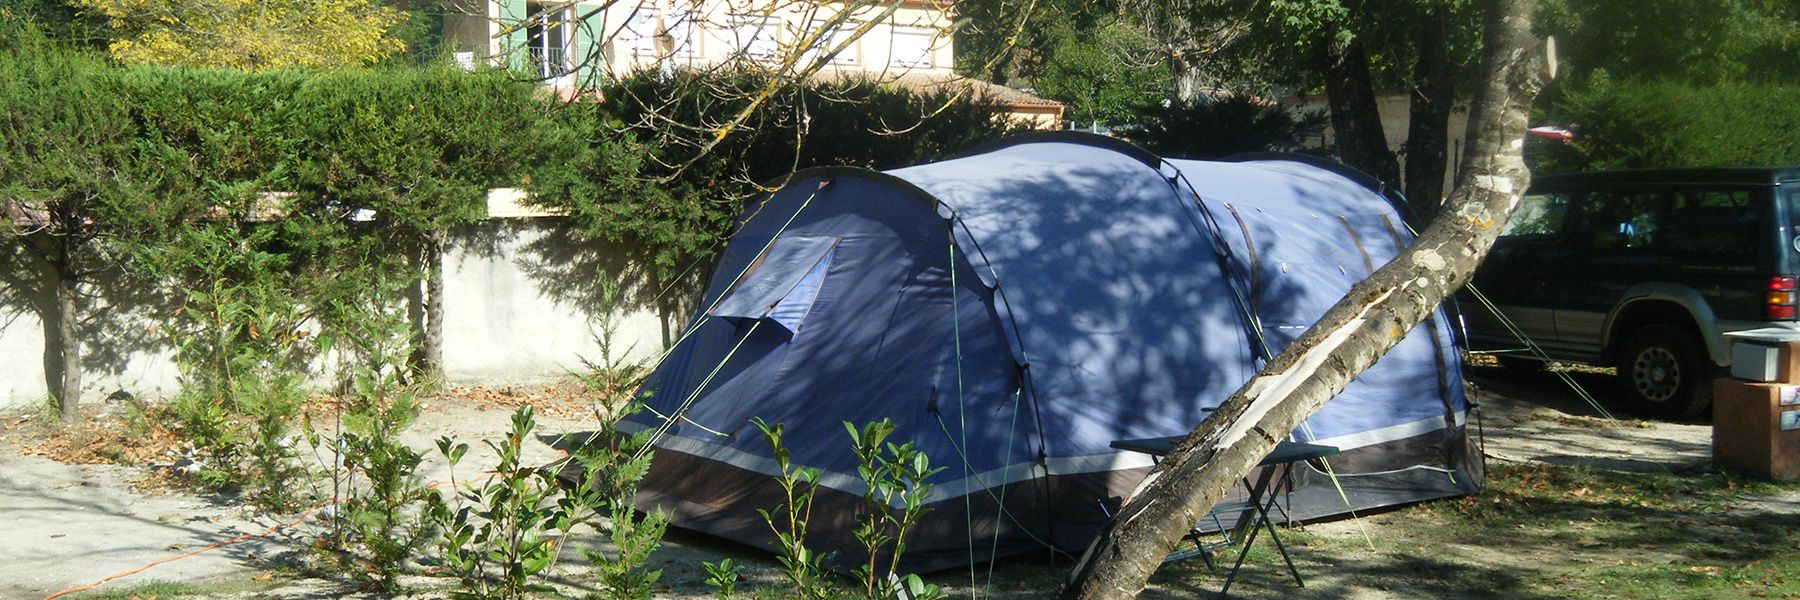 Our campsit pitches